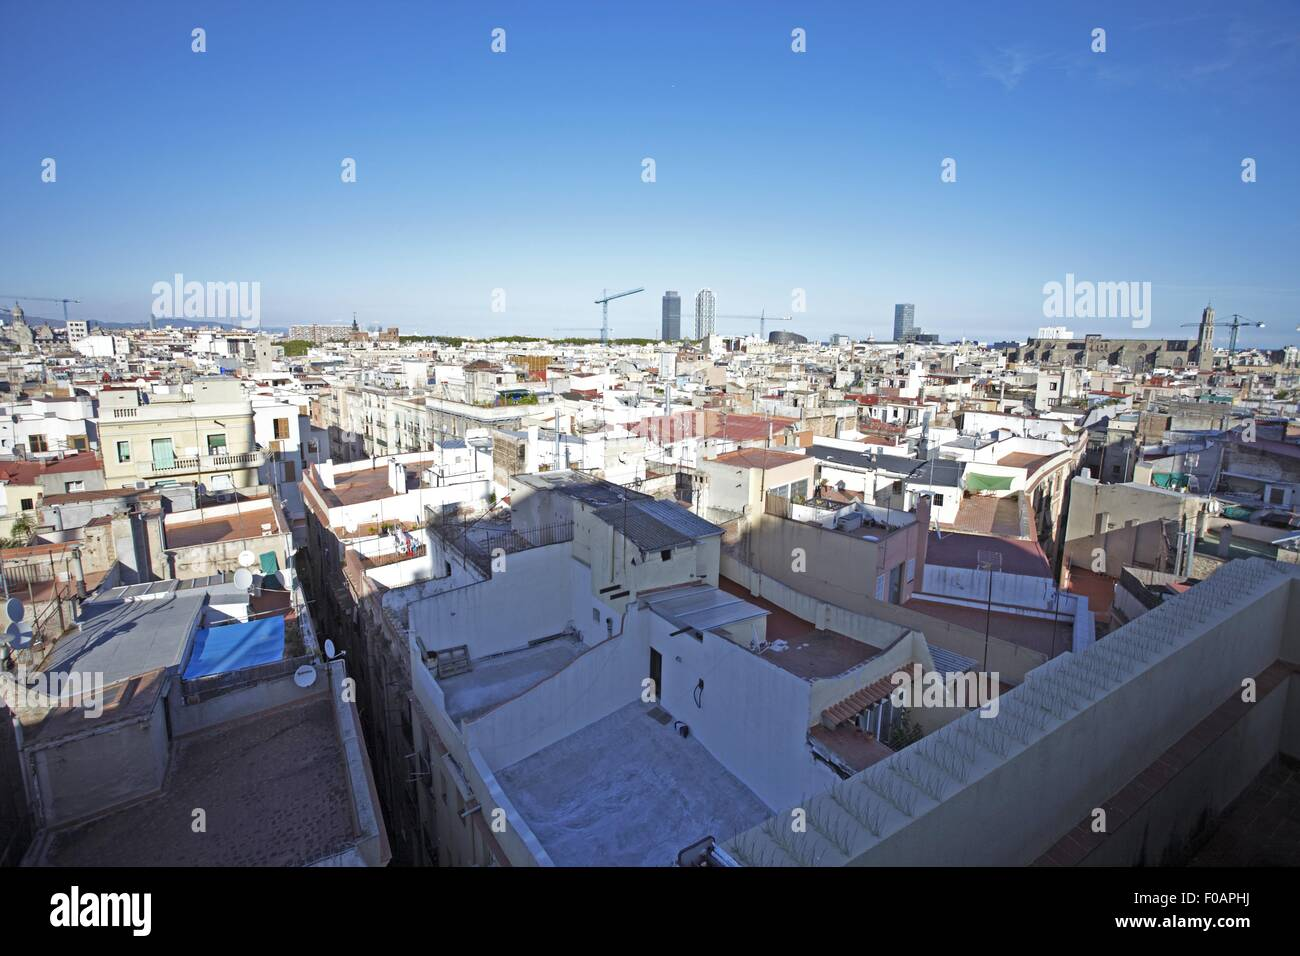 Grand Hotel Central Barcelona View Of A Cityscape With Grand Hotel Central In Barcelona, Spain Stock Photo - Alamy